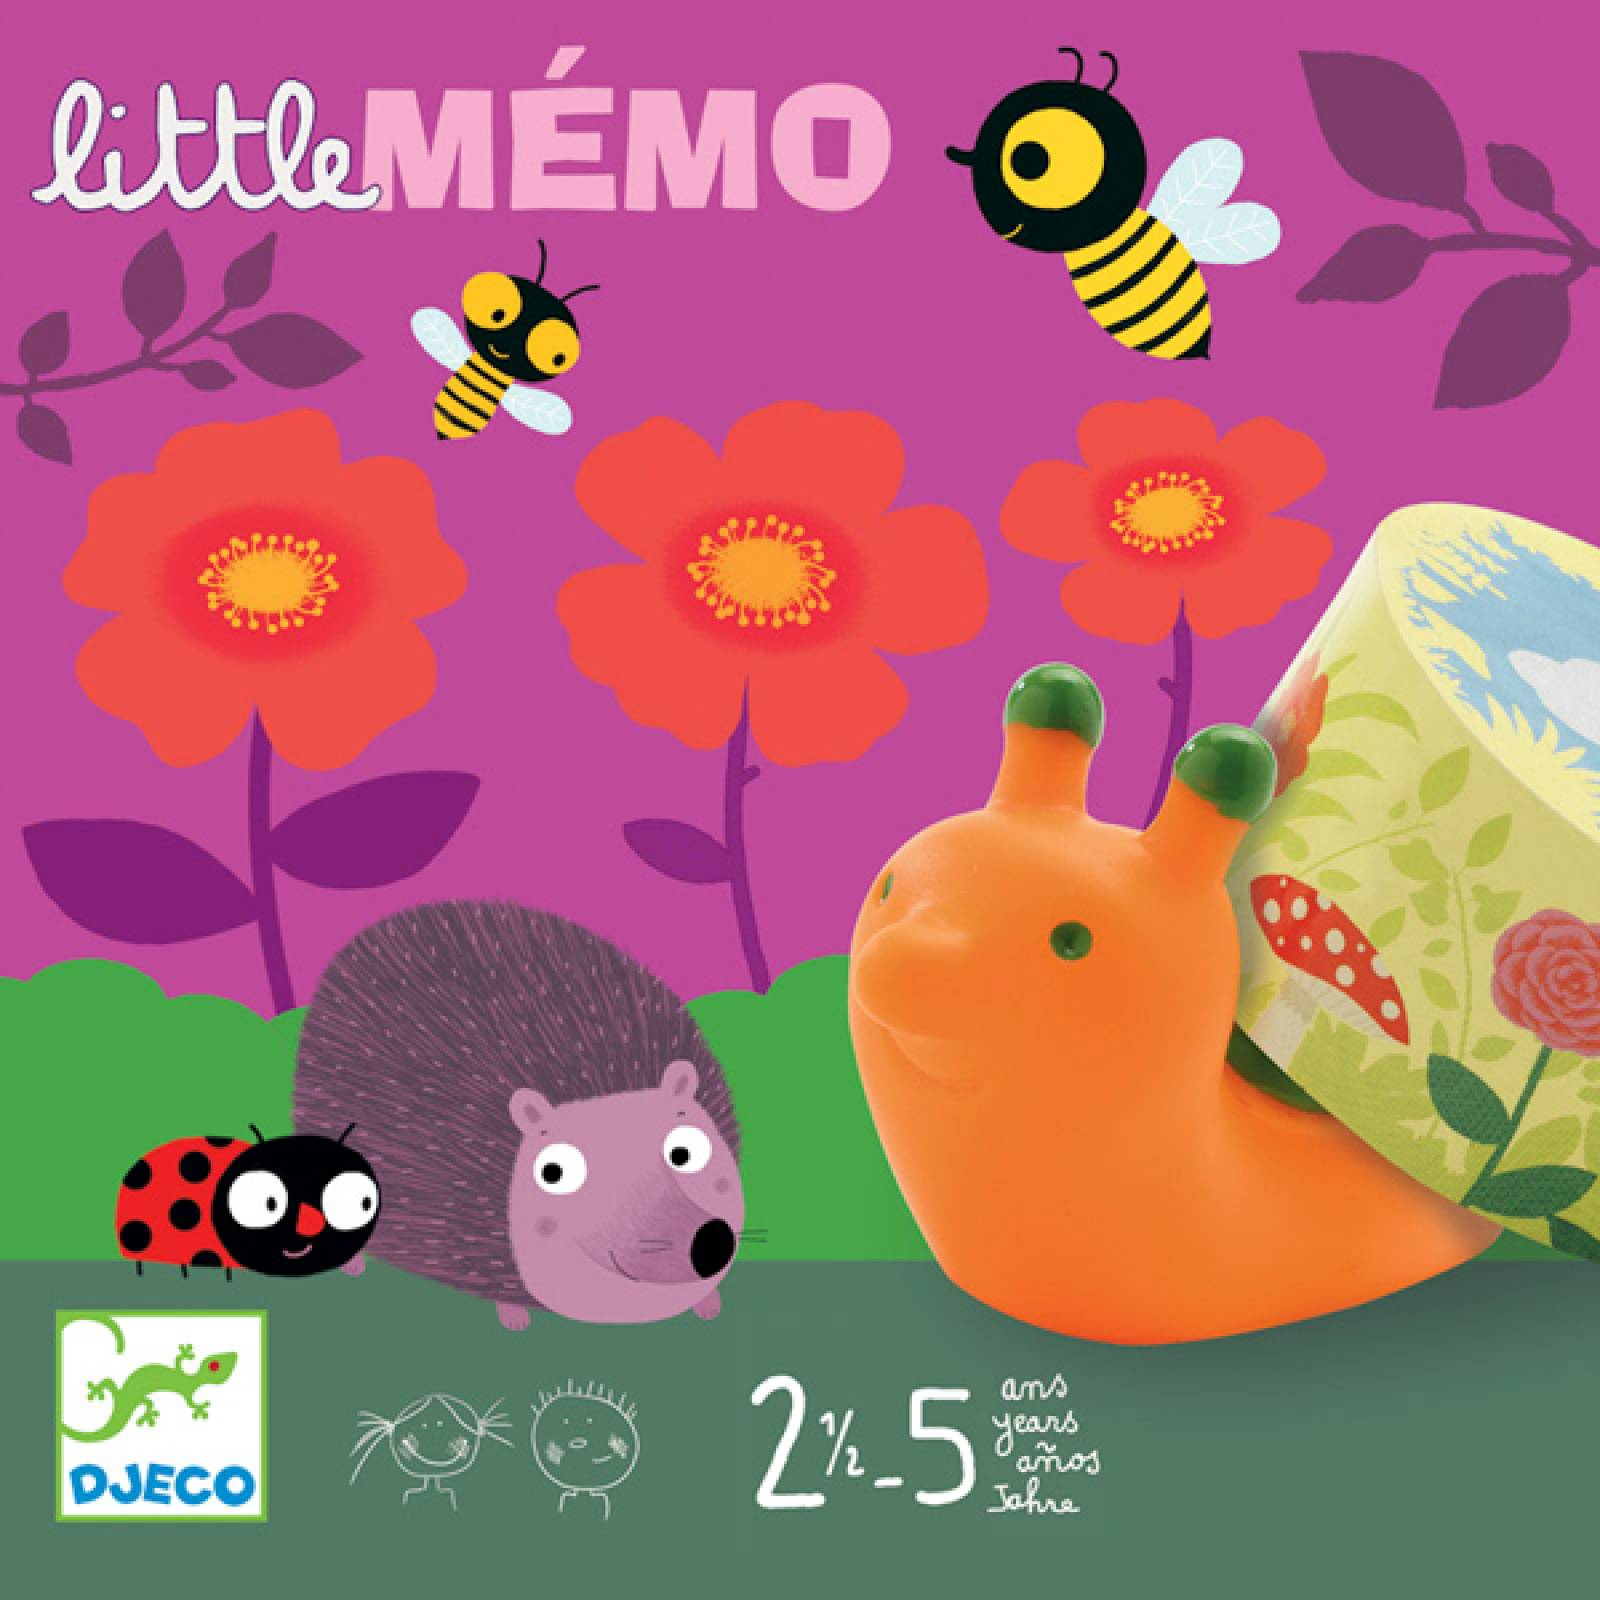 Little Memo Game By Djeco Age 2.5-5yrs thumbnails